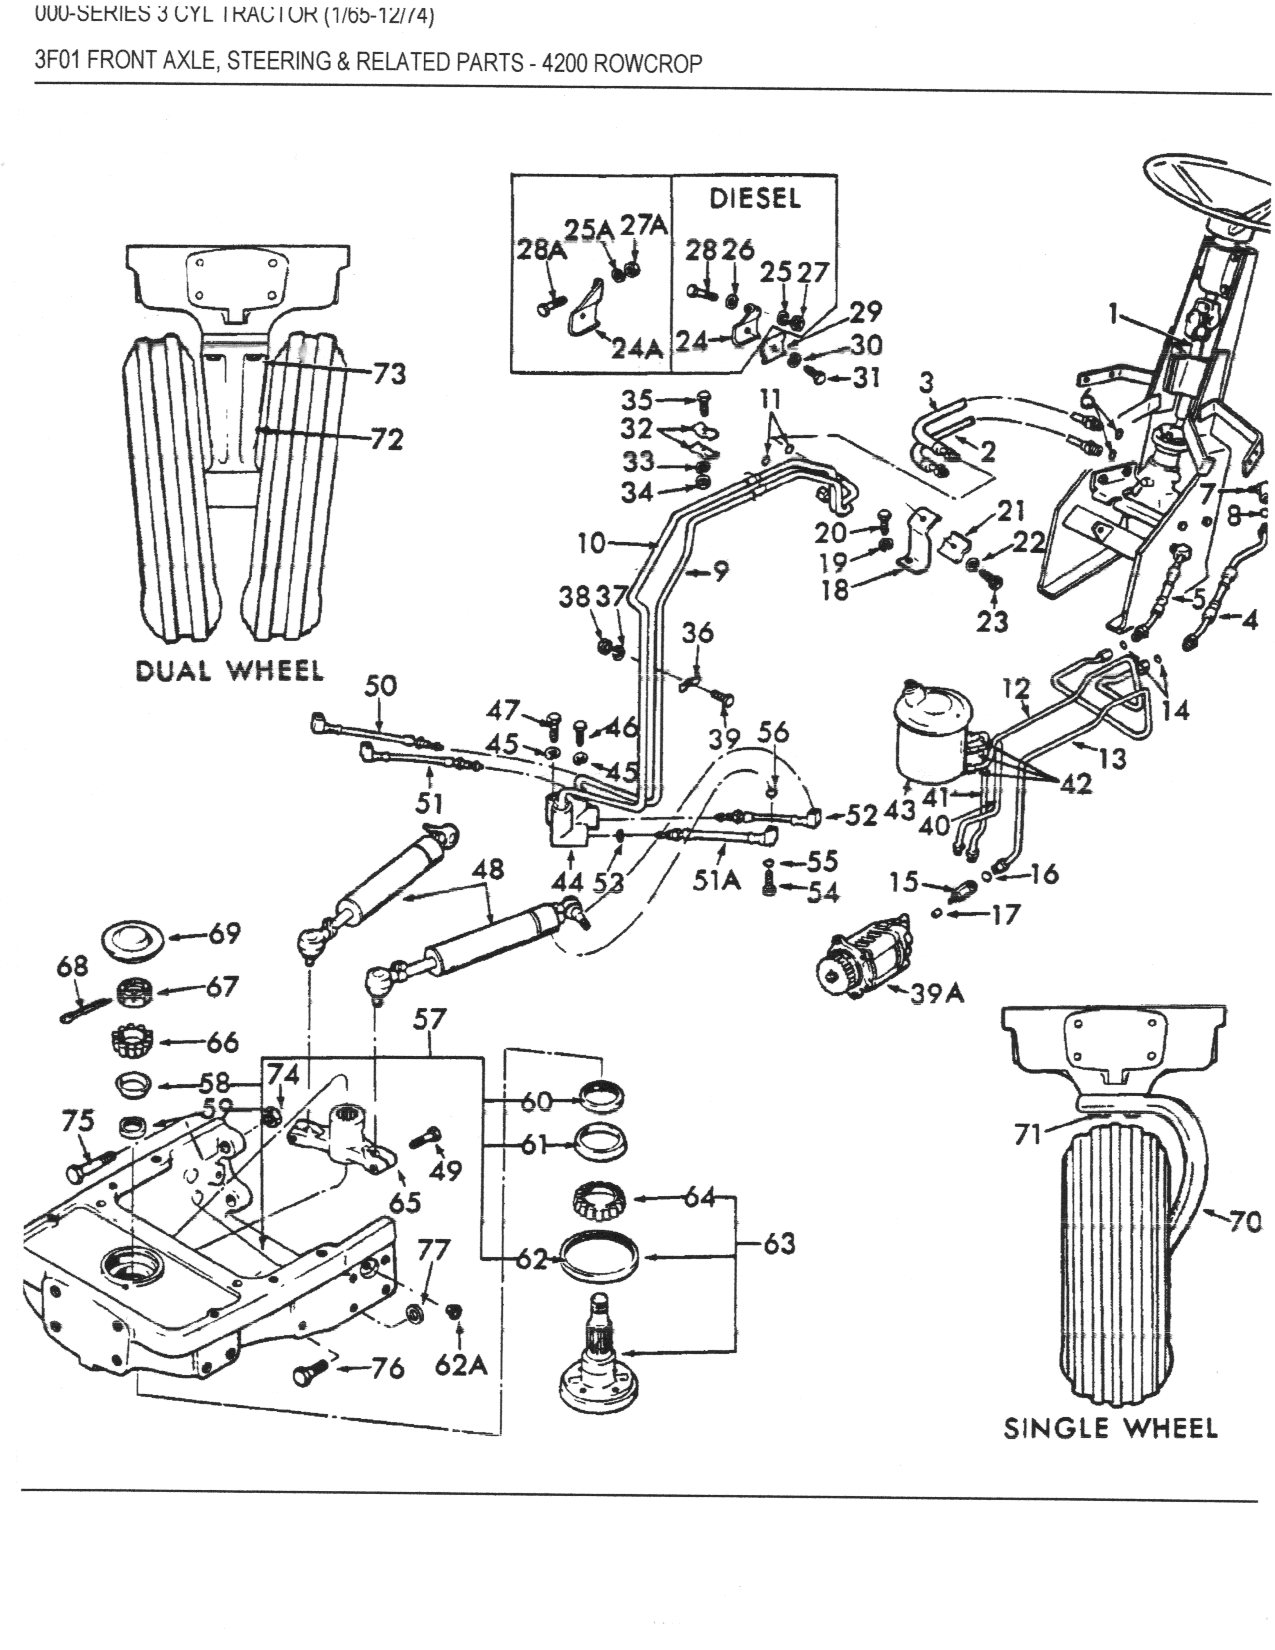 4200002 4200 power steering overflowing yesterday's tractors ford 5000 tractor parts diagram at n-0.co